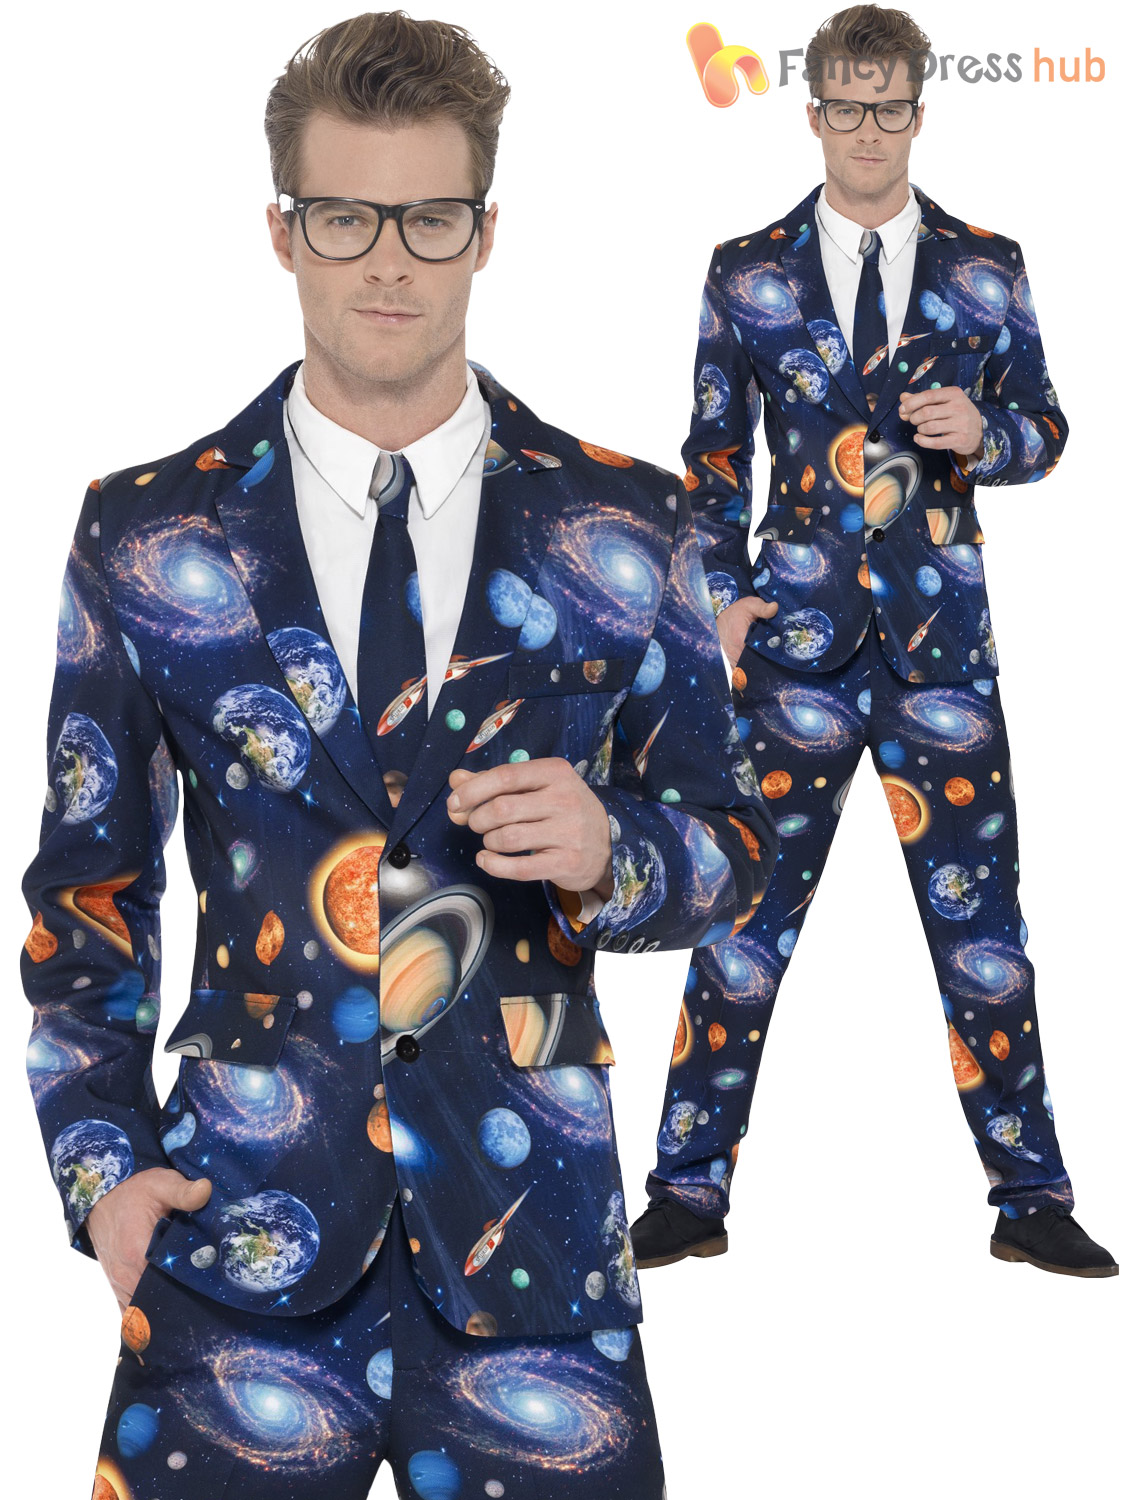 Mens-Stand-Out-Suit-Stag-Do-Fancy-Dress-Party-Outfit-Funny-Comedy-Costume-Adult